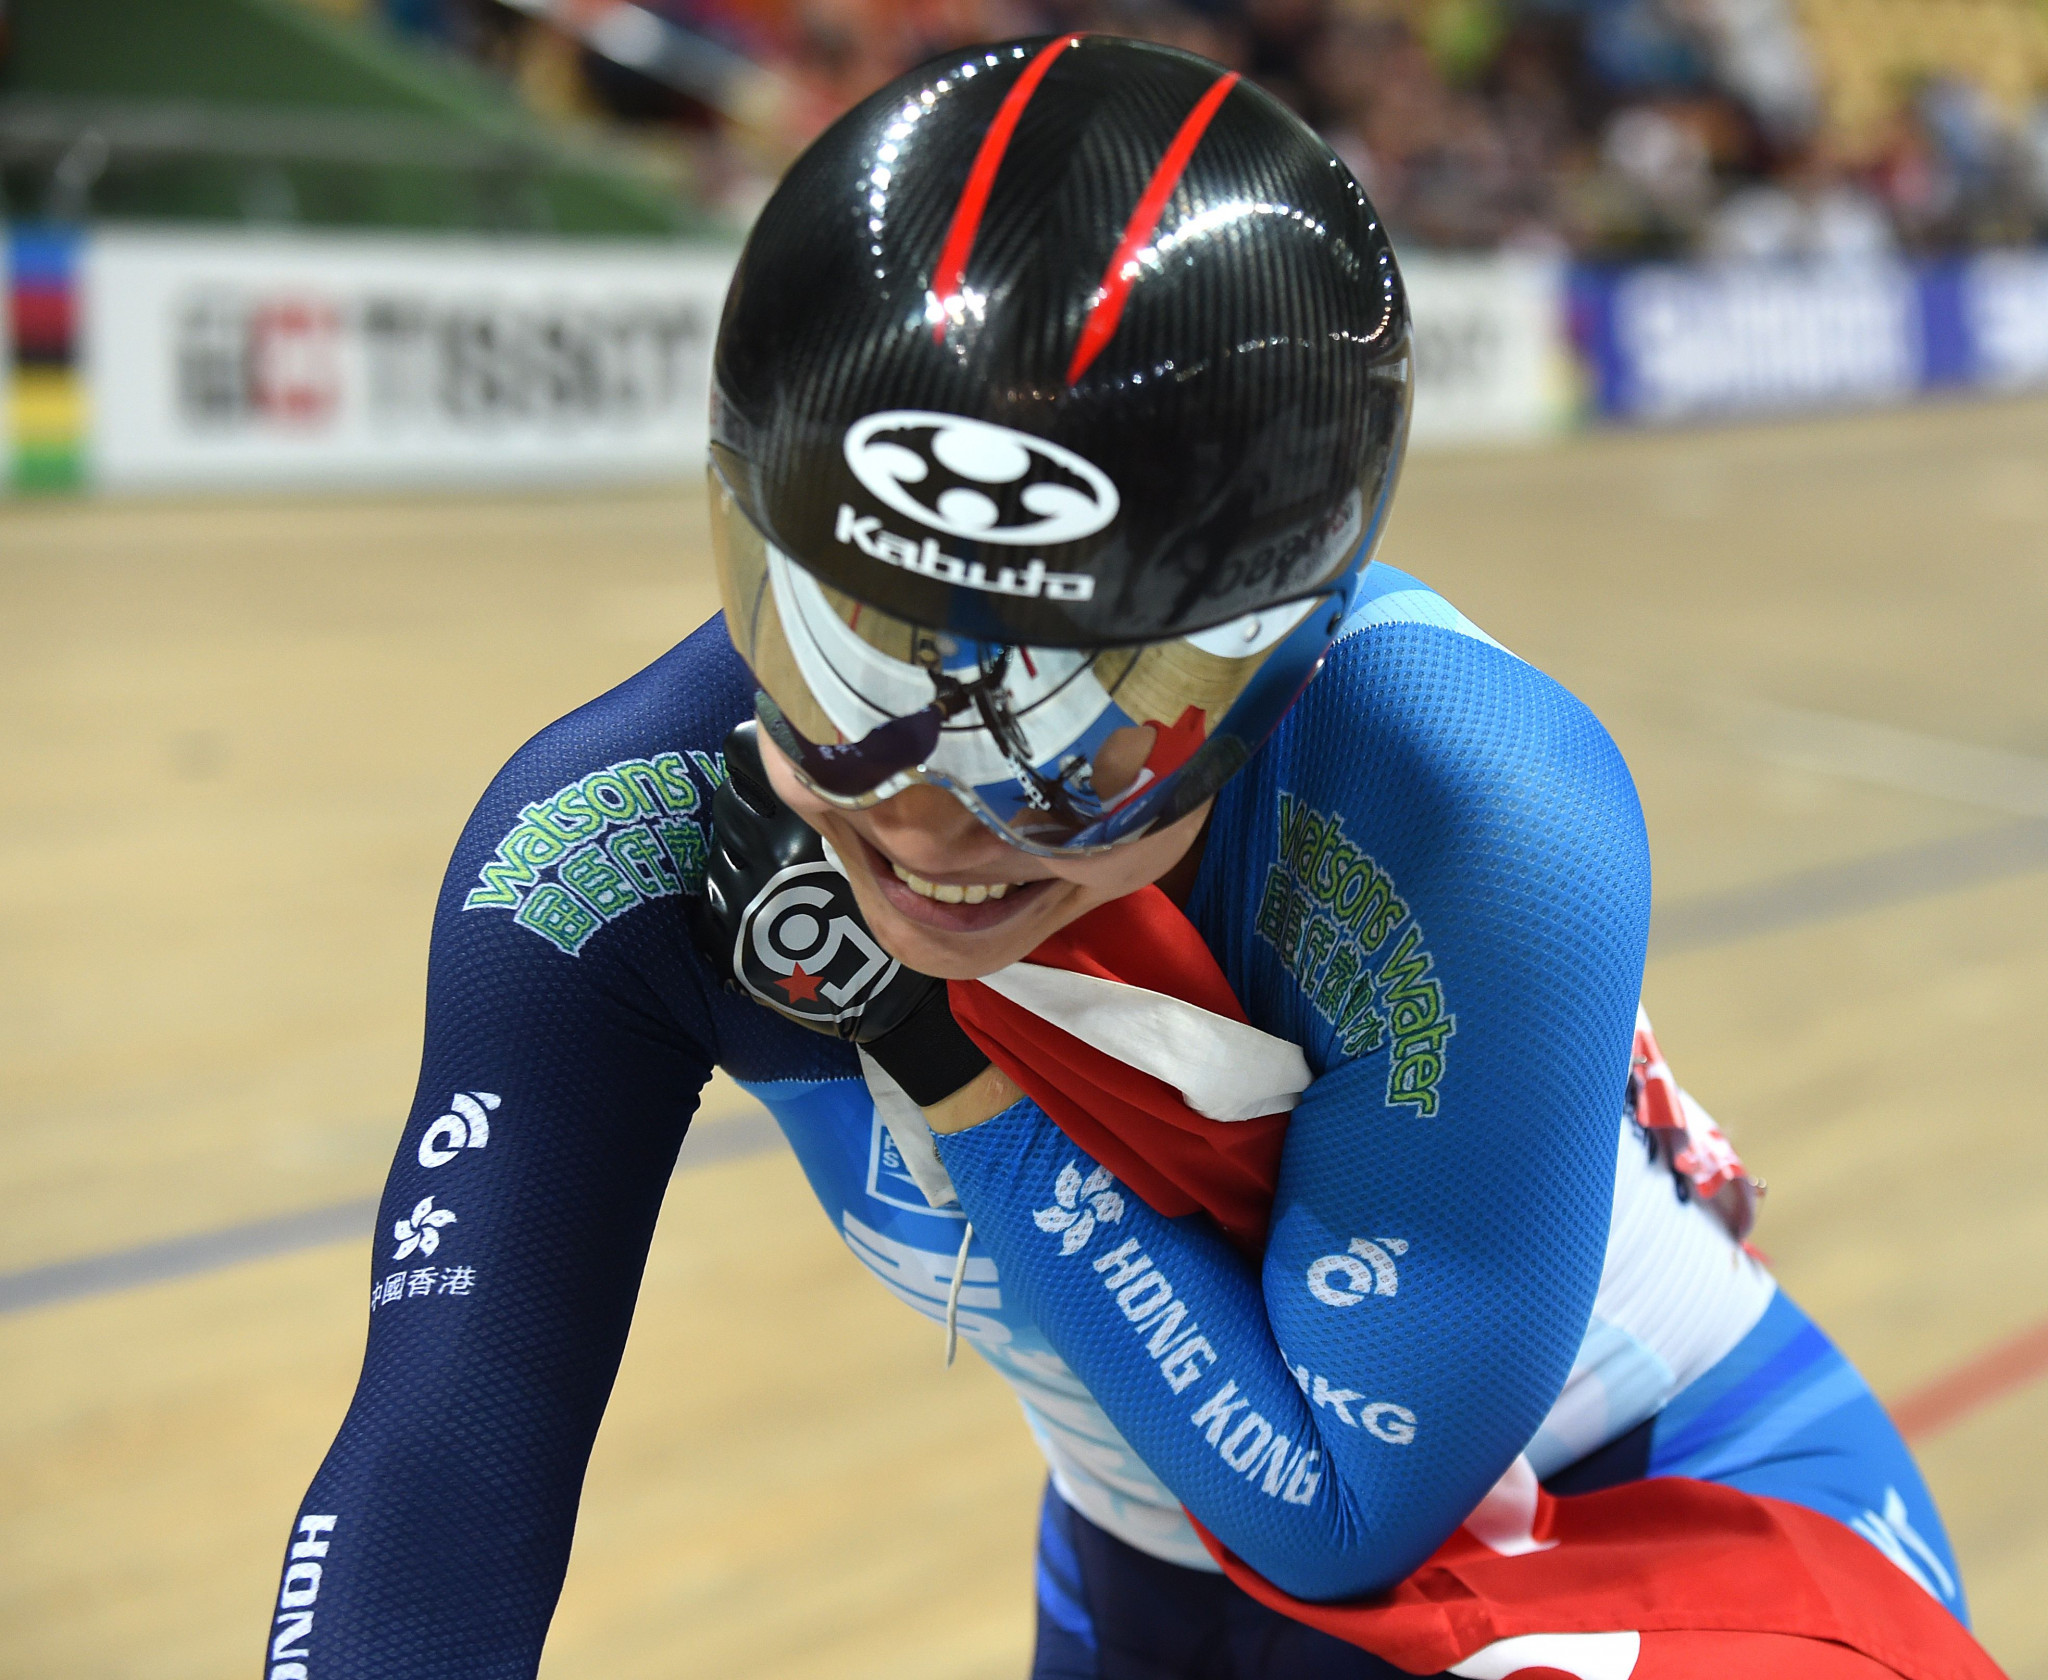 Lee wins women's sprint event at UCI Track Cycling Nations Cup in Hong Kong